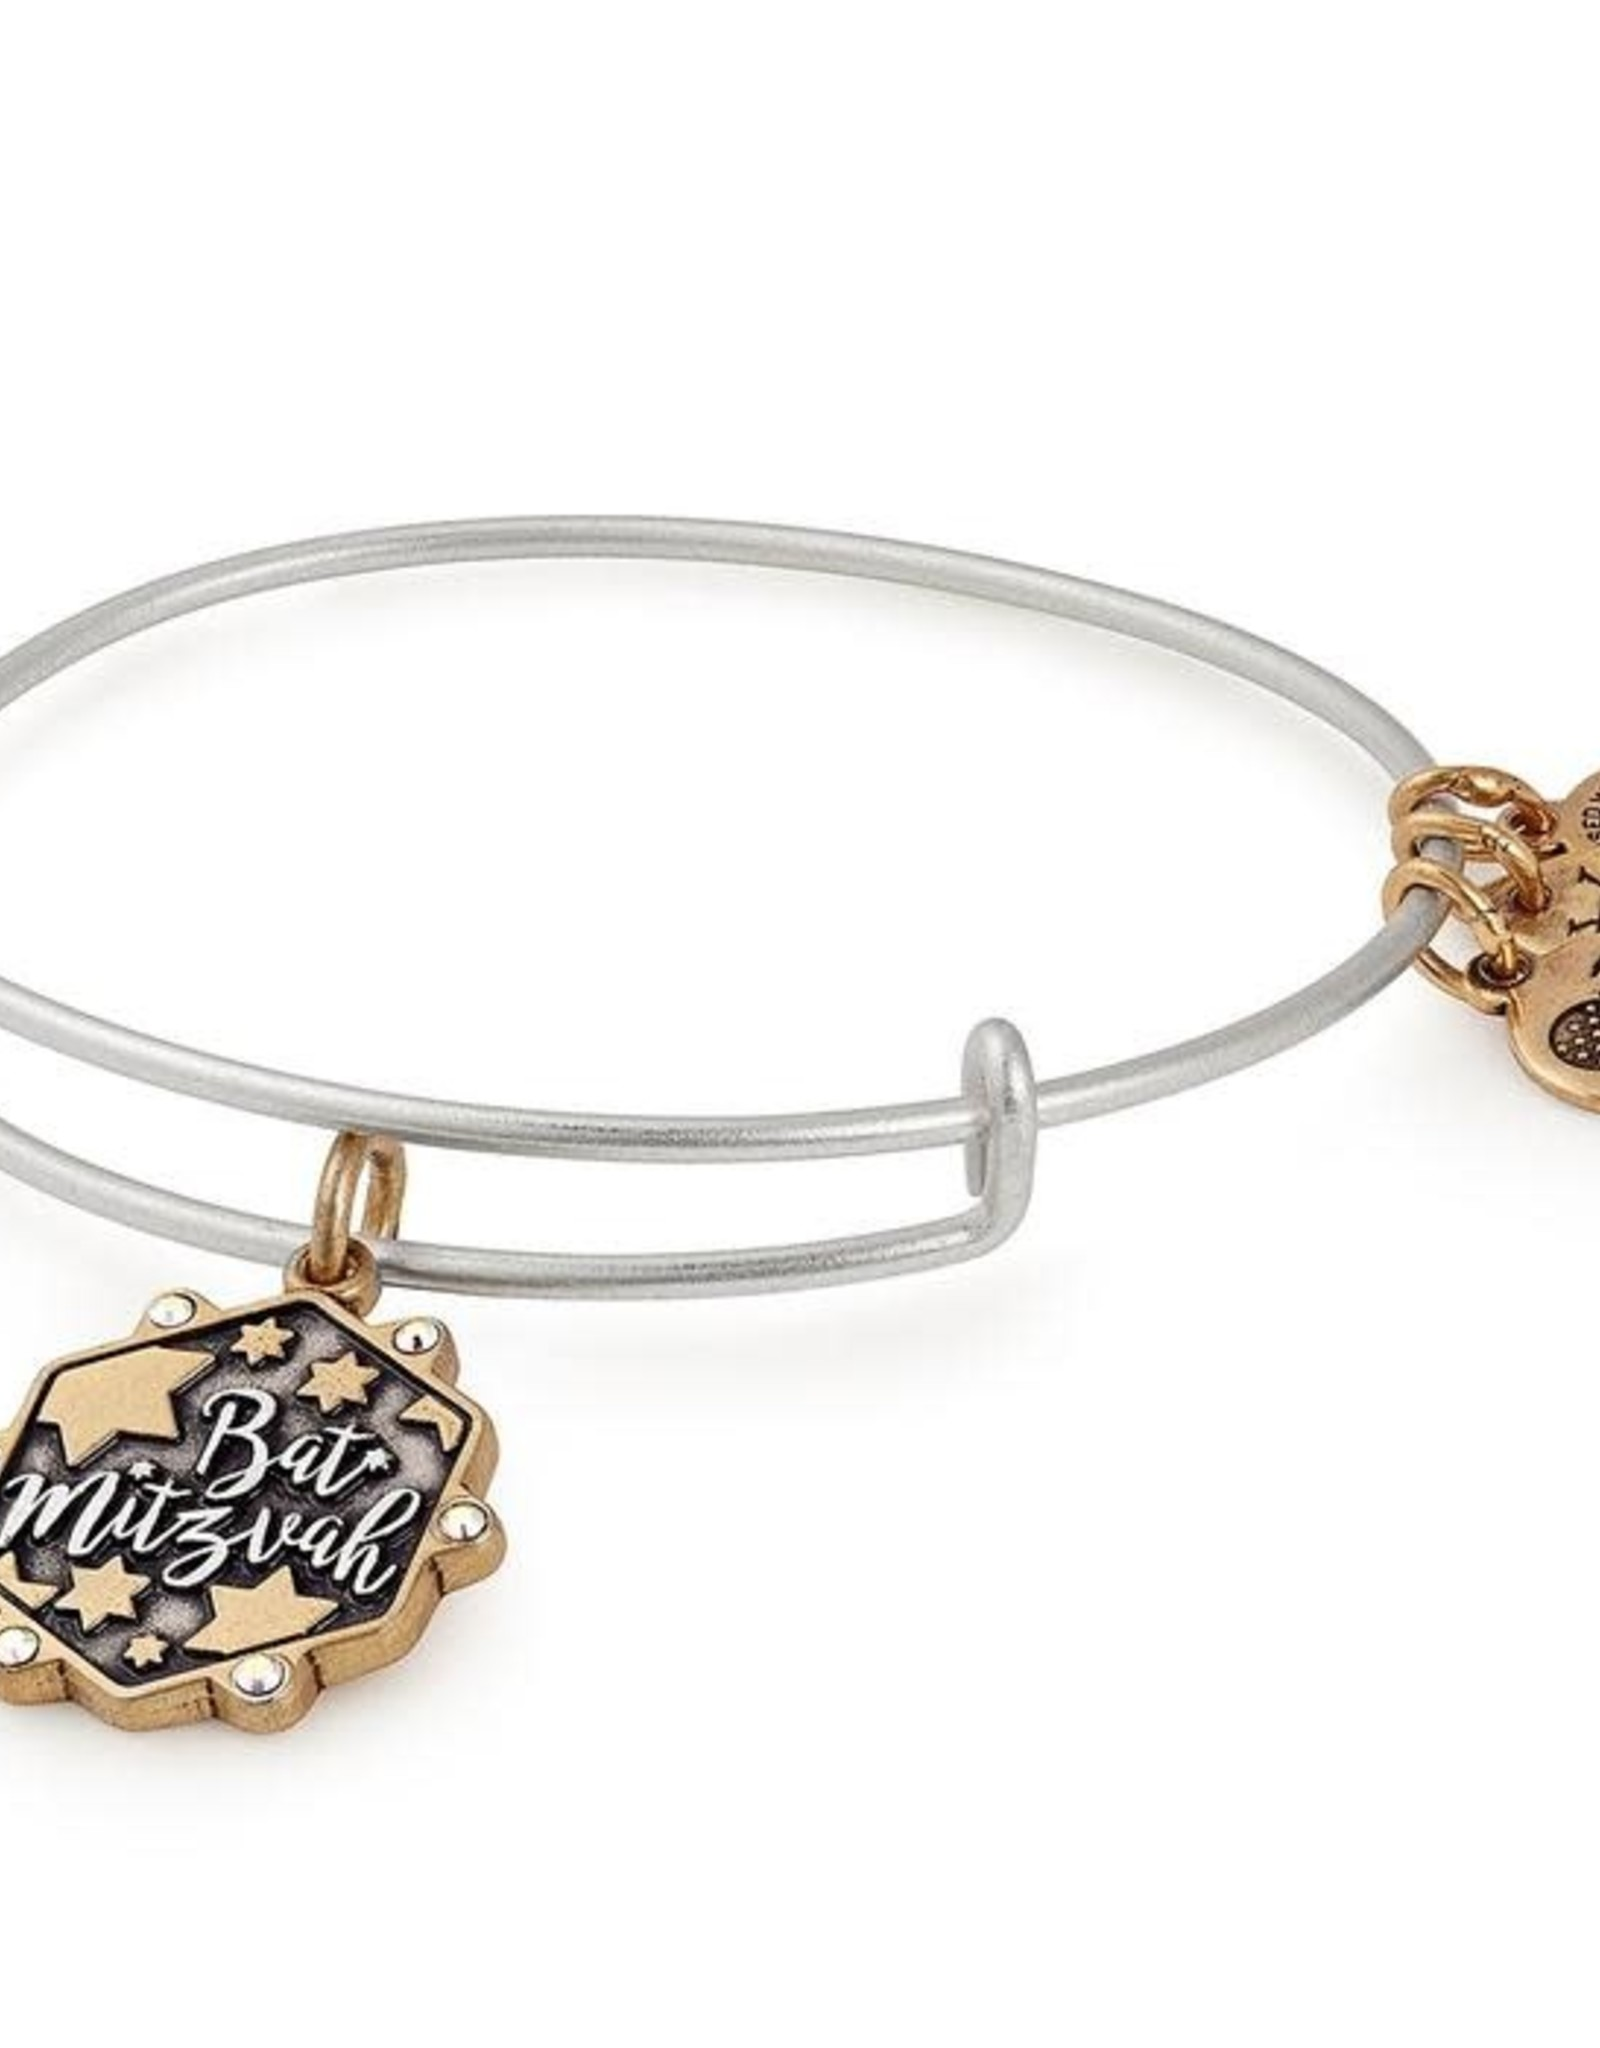 Alex and Ani Bat Mitzvah, Two Tone RG/RS